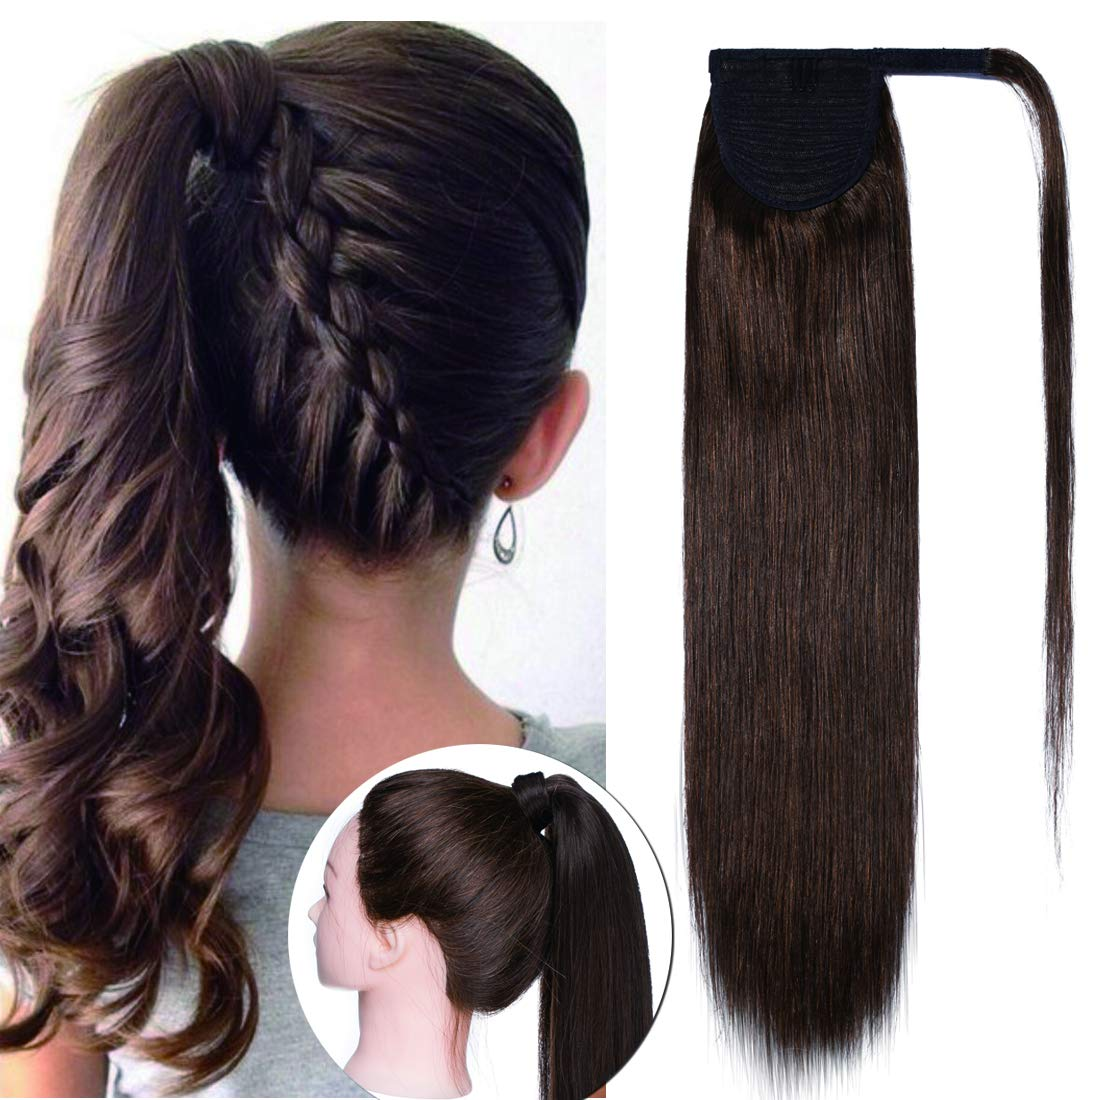 SEGO Ponytail Extension Human Hair Pony Tails Hair Extensions Wrap Around Ponytail Hair Extensions 100% Real Remy Hair With Magic Paste Long Straight For Women #04 Medium Brown 16 Inch 80g